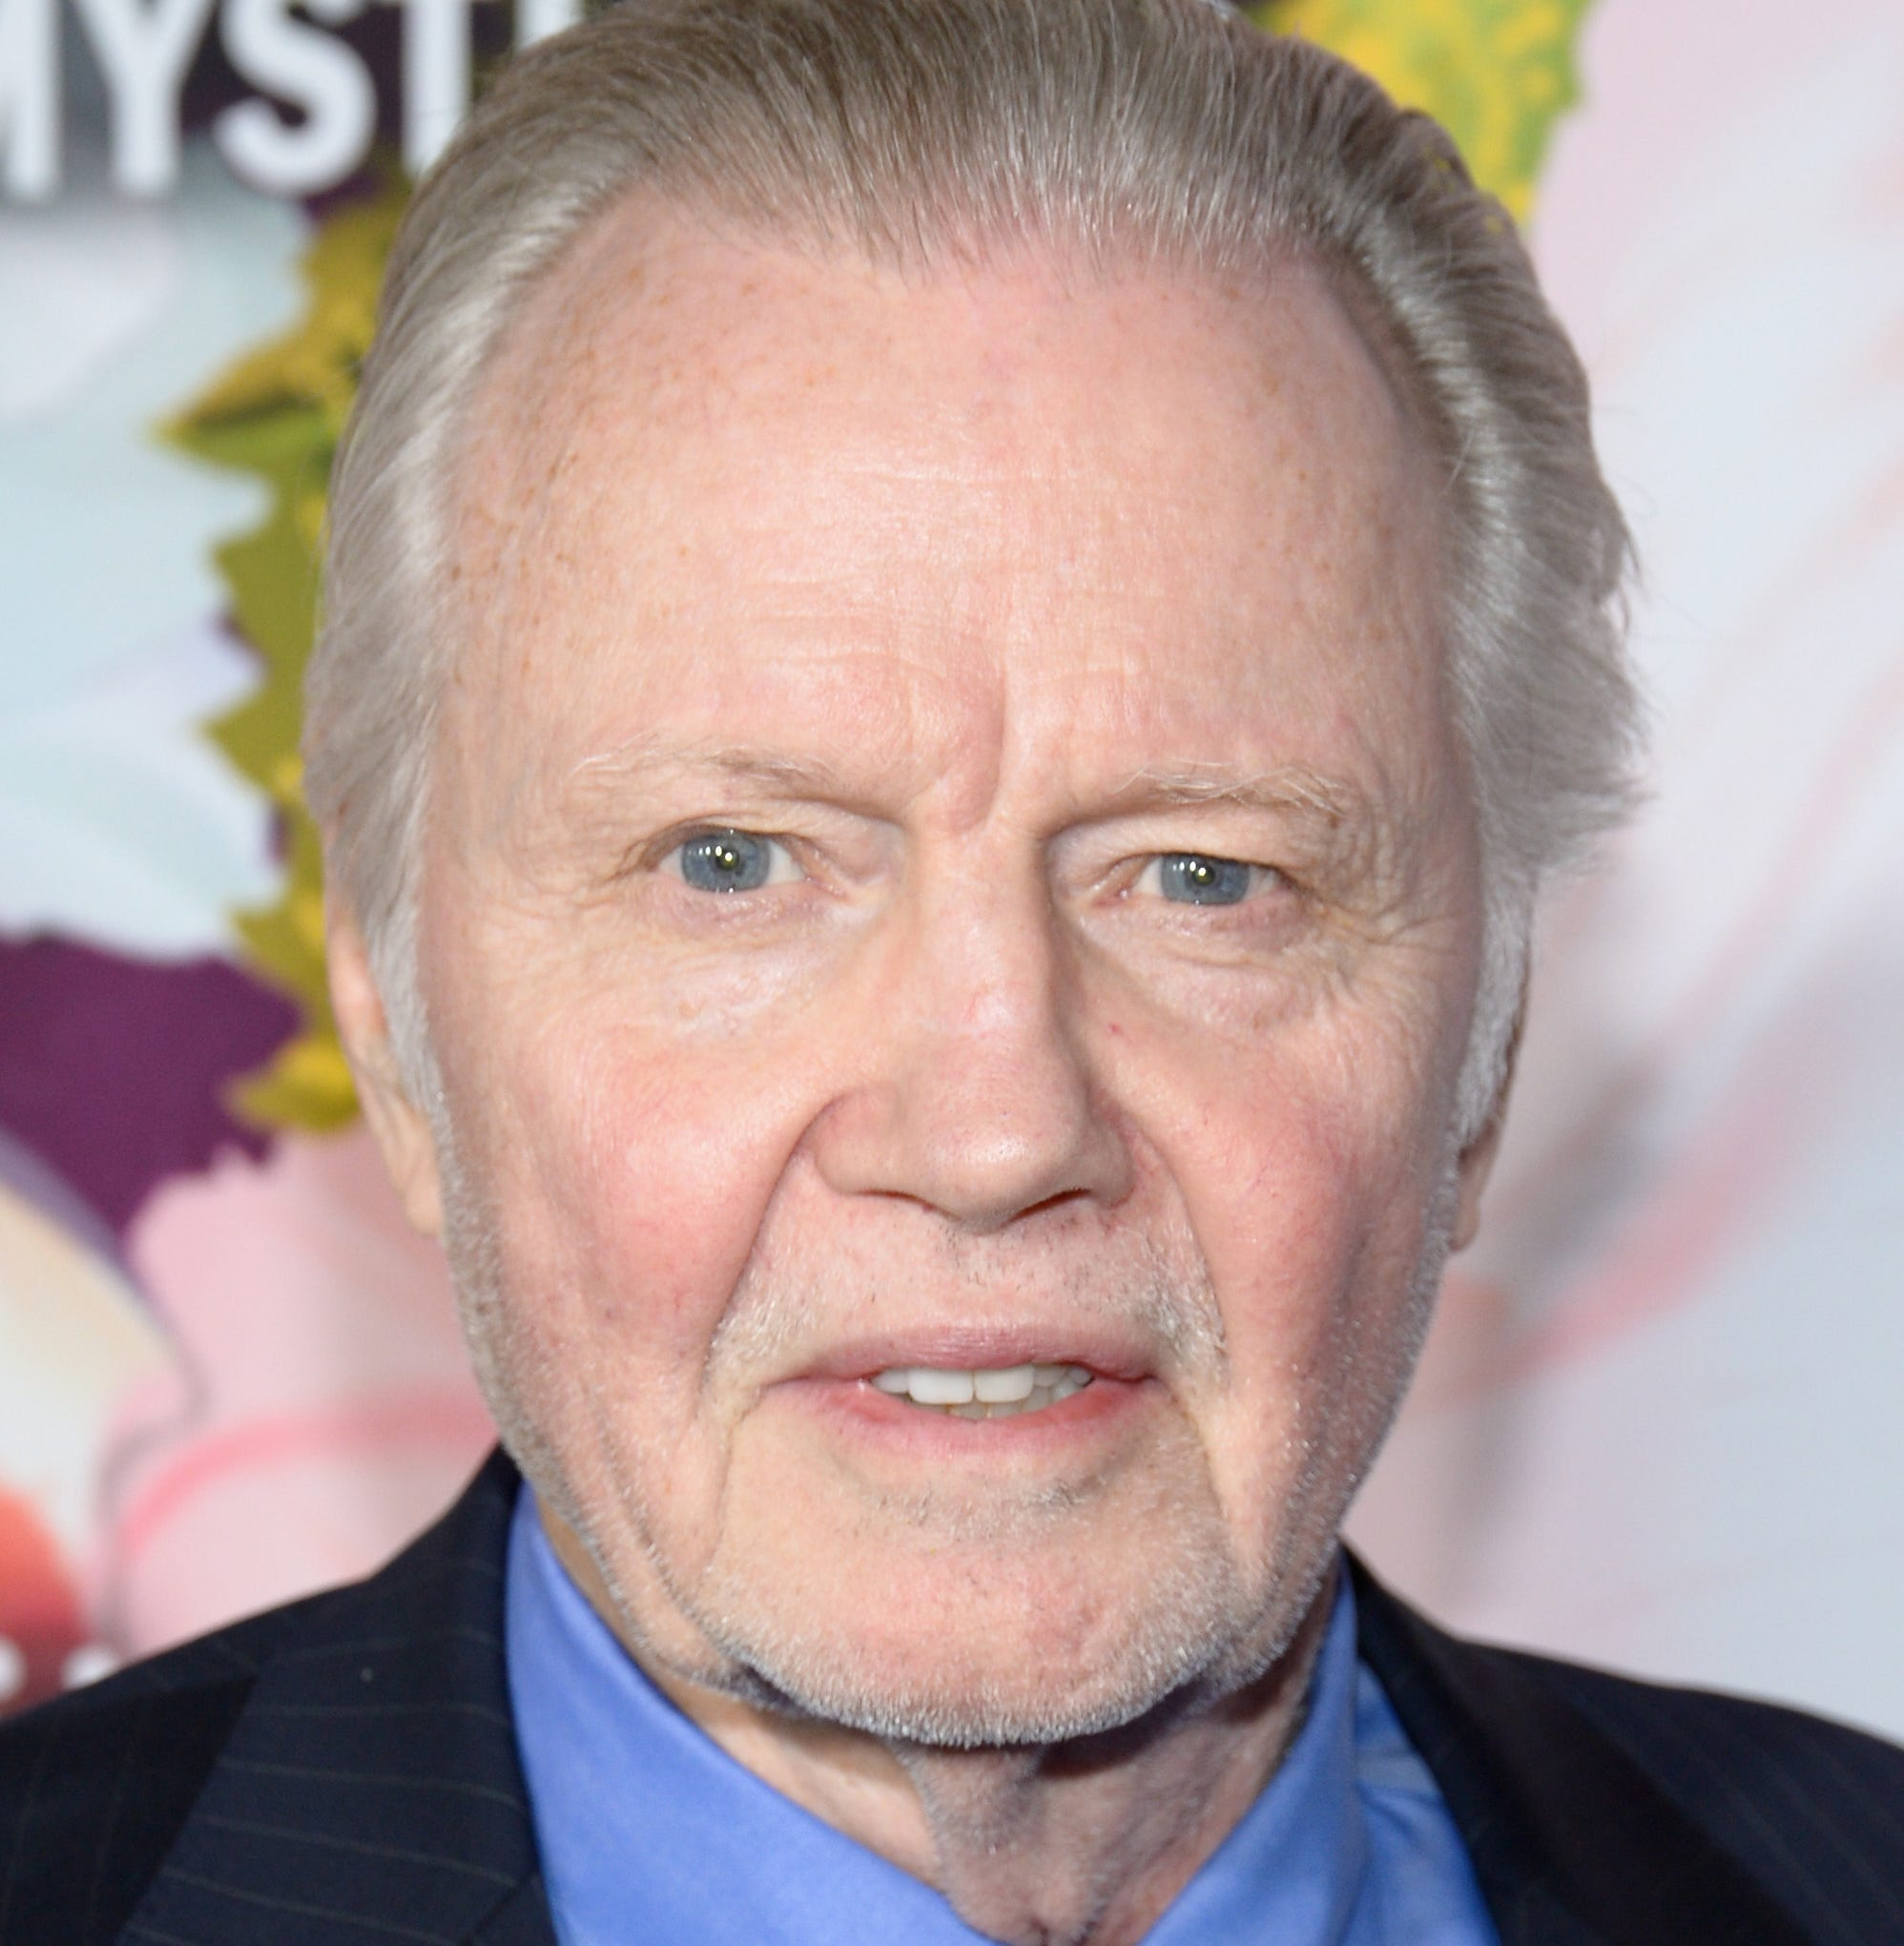 PASADENA, CA - JANUARY 13:  Actor Jon Voight attends Hallmark Channel and Hallmark Movies and Mysteries Winter 2018 TCA Press Tour at Tournament House on January 13, 2018 in Pasadena, California.  (Photo by Tara Ziemba/Getty Images) ORG XMIT: 775097690 ORIG FILE ID: 904690384